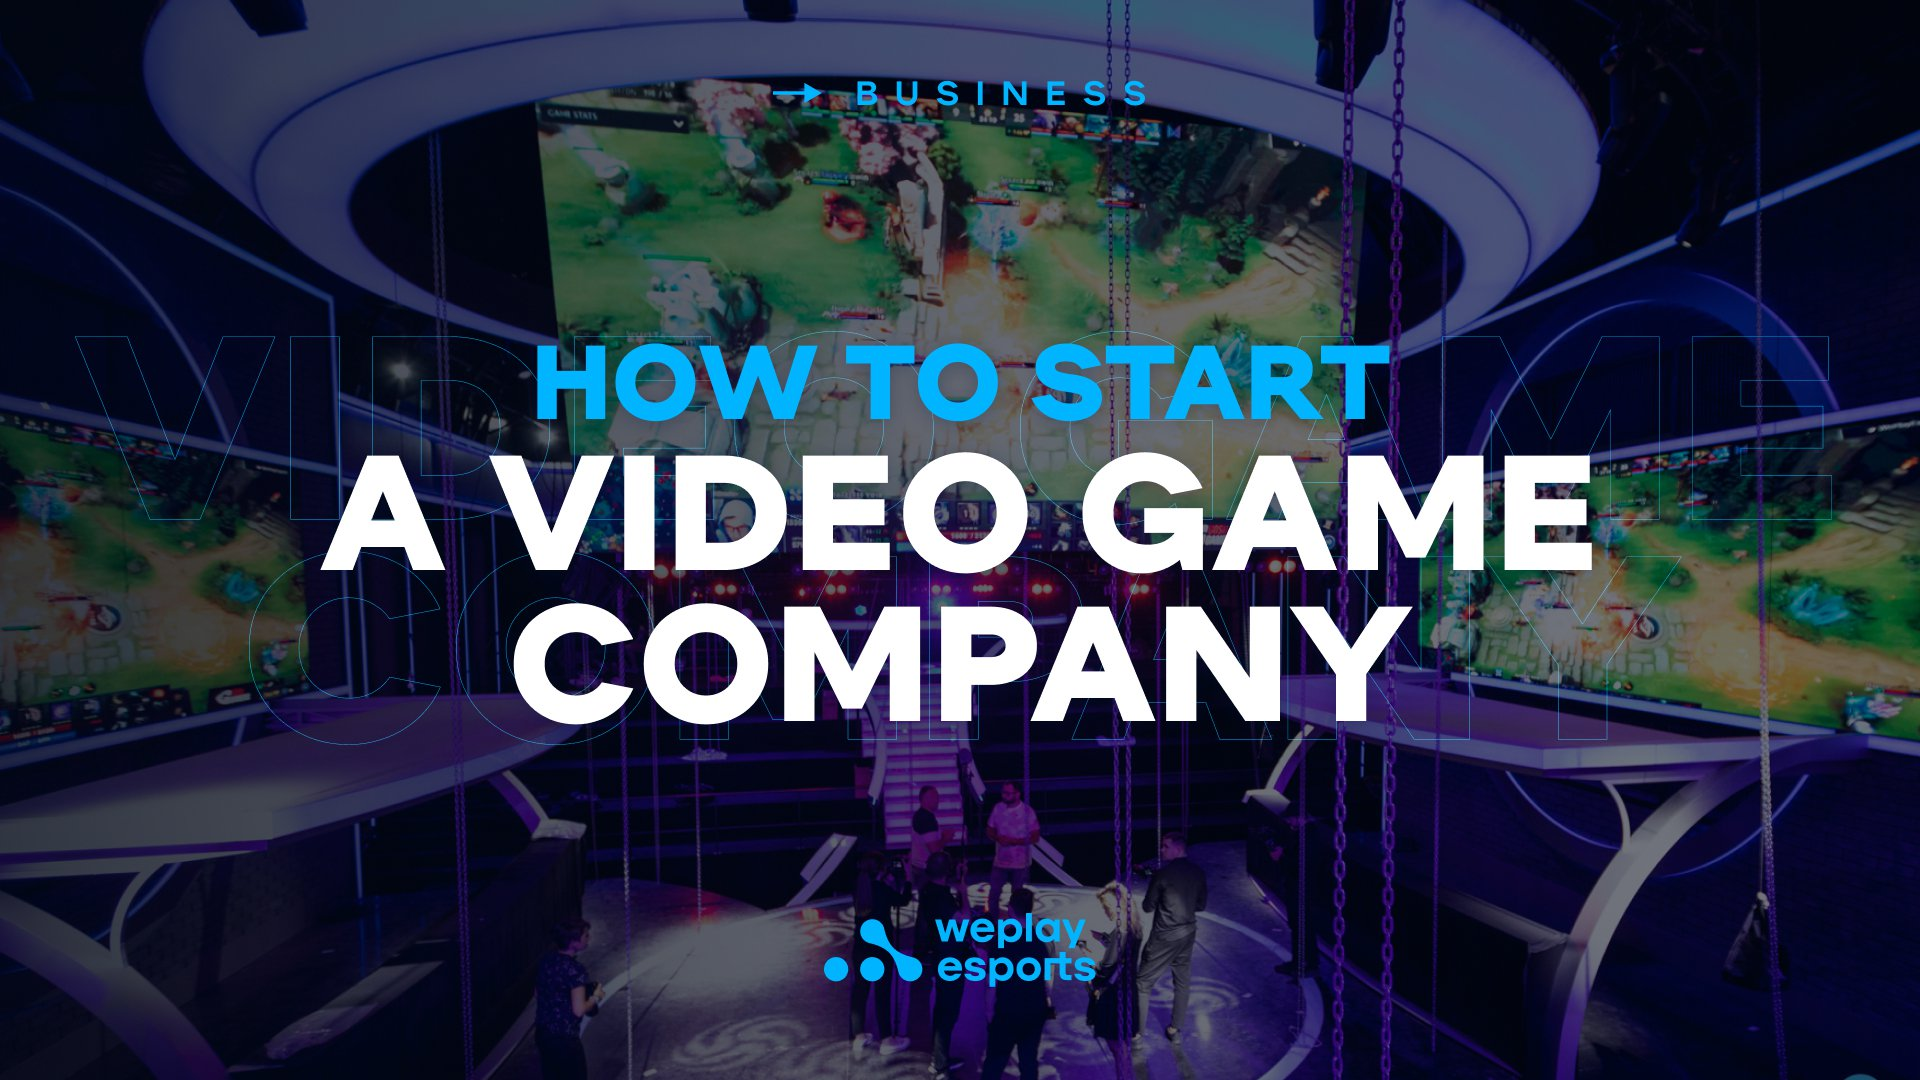 How to Start a Video Game Company. Image: WePlay Holding